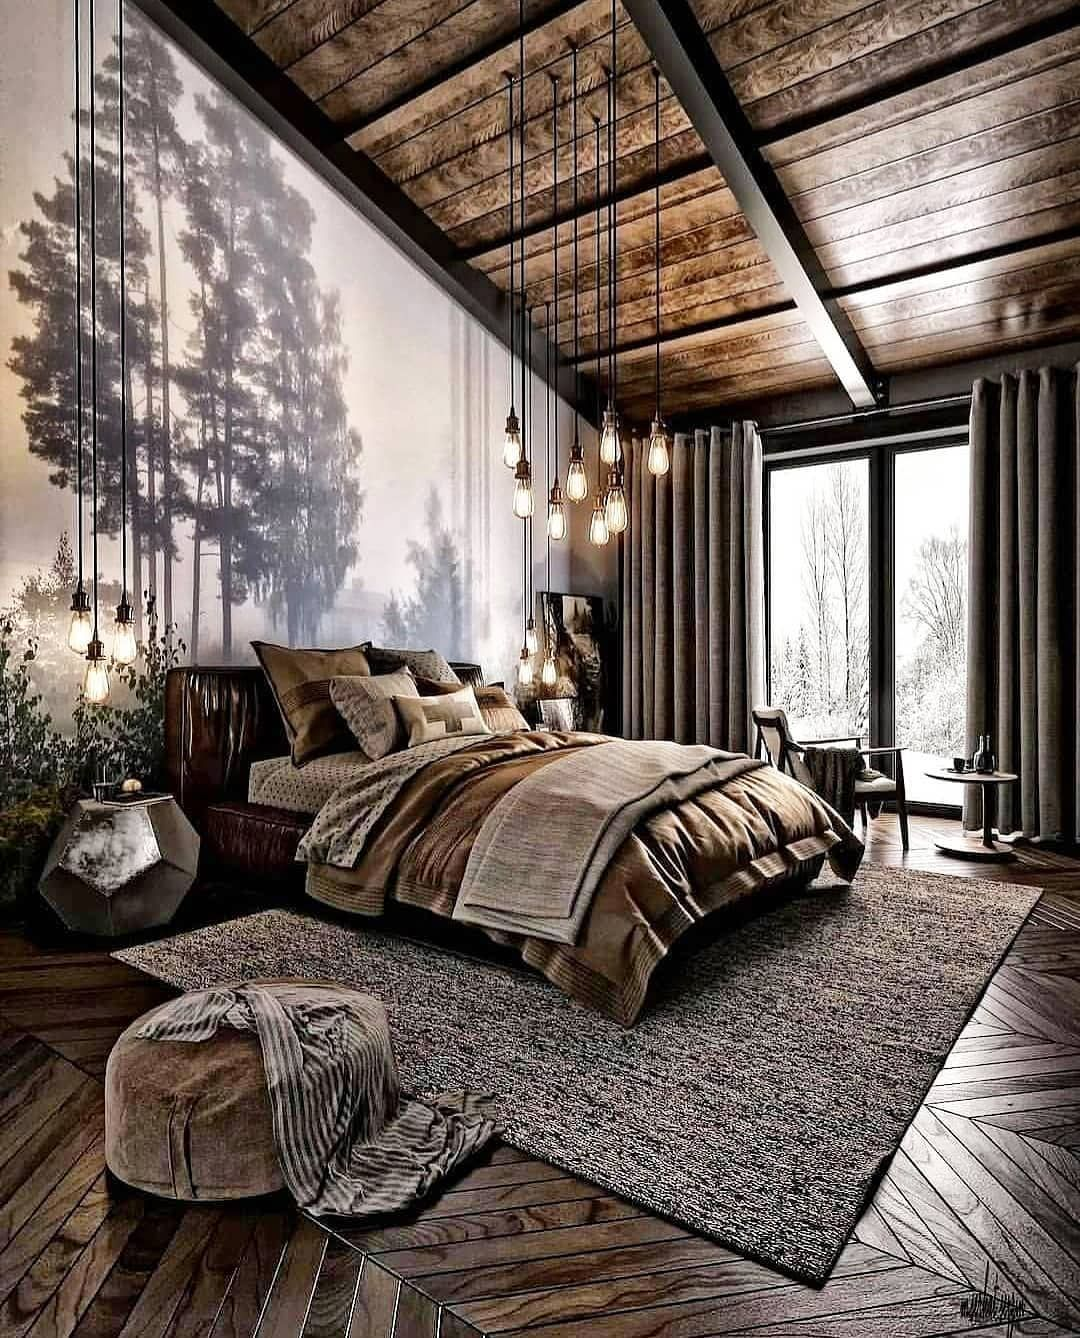 """LAVISH INTERIORS on Instagram: """"LOFT inspired bedroom for cold places.🤧😍😍 _ _ What do you think about this interior blend. Comment down below if you love this. 👇🏻👇🏻👇🏻 _ _…"""""""